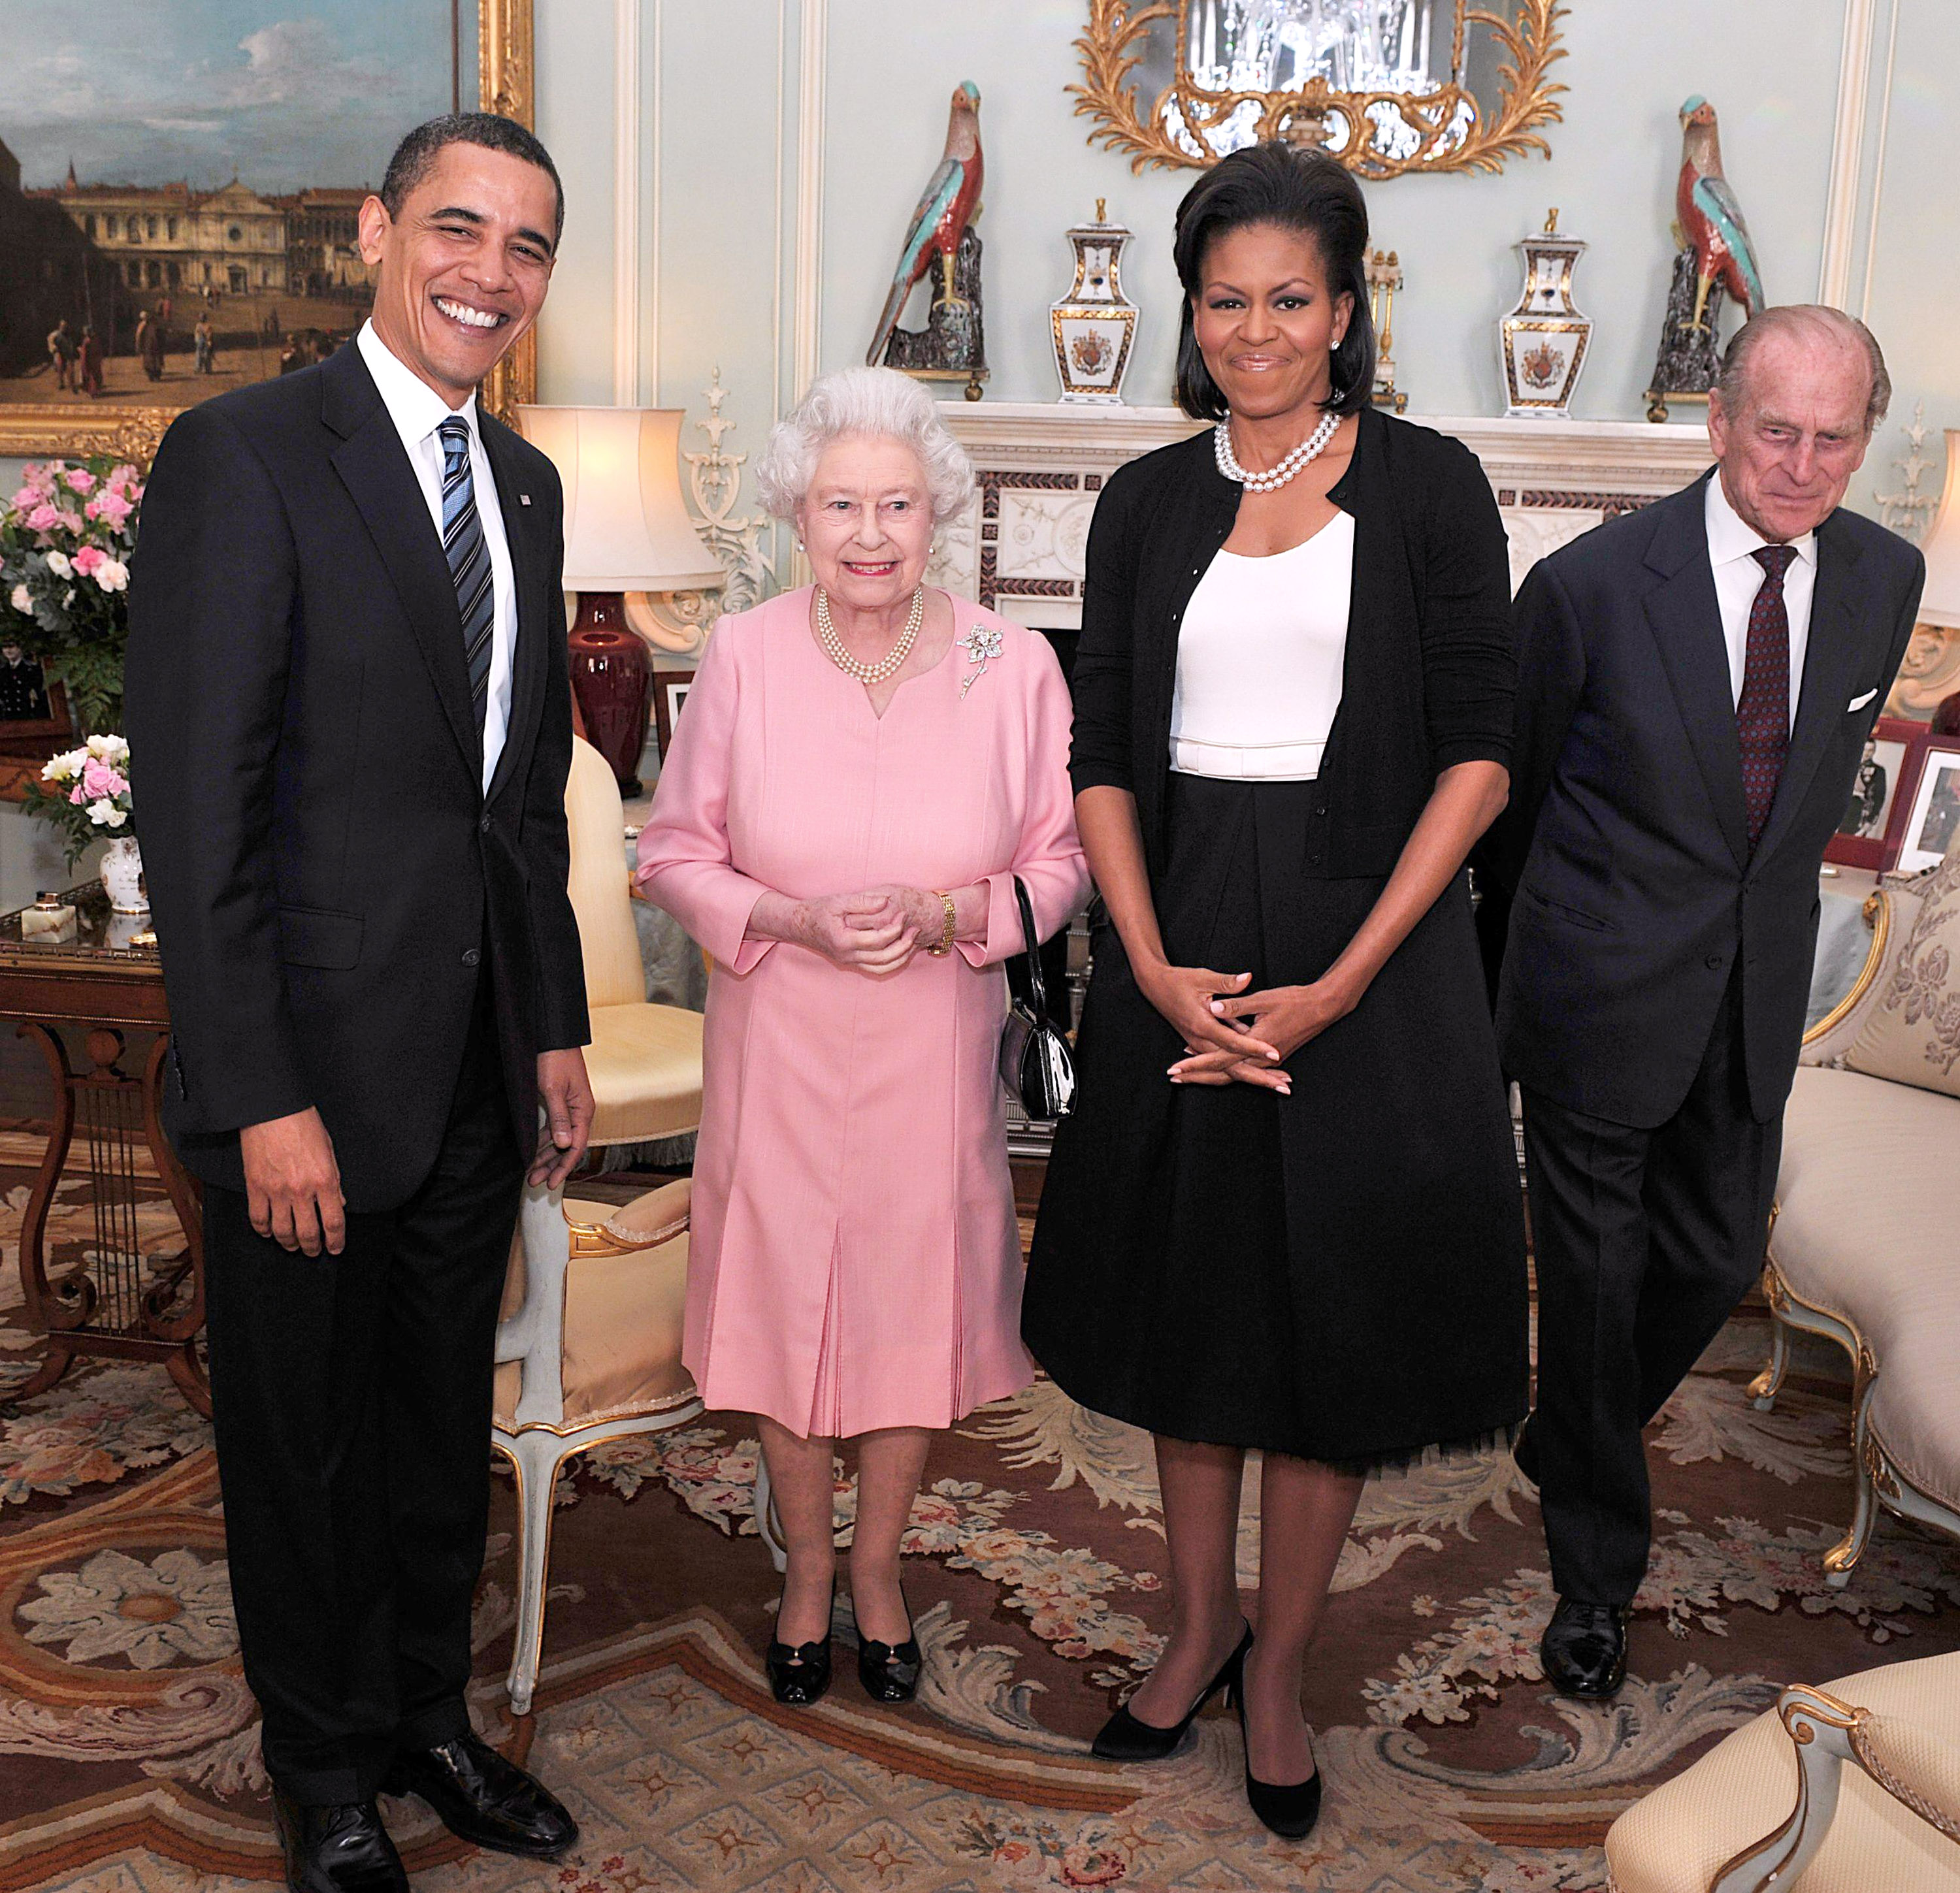 US President Barack Obama and his wife Michelle Obama pose for photographs with Queen Elizabeth II and Prince Philip, Duke of Edinburgh during an audience at Buckingham Palace on April 1, 2009 in London, England.